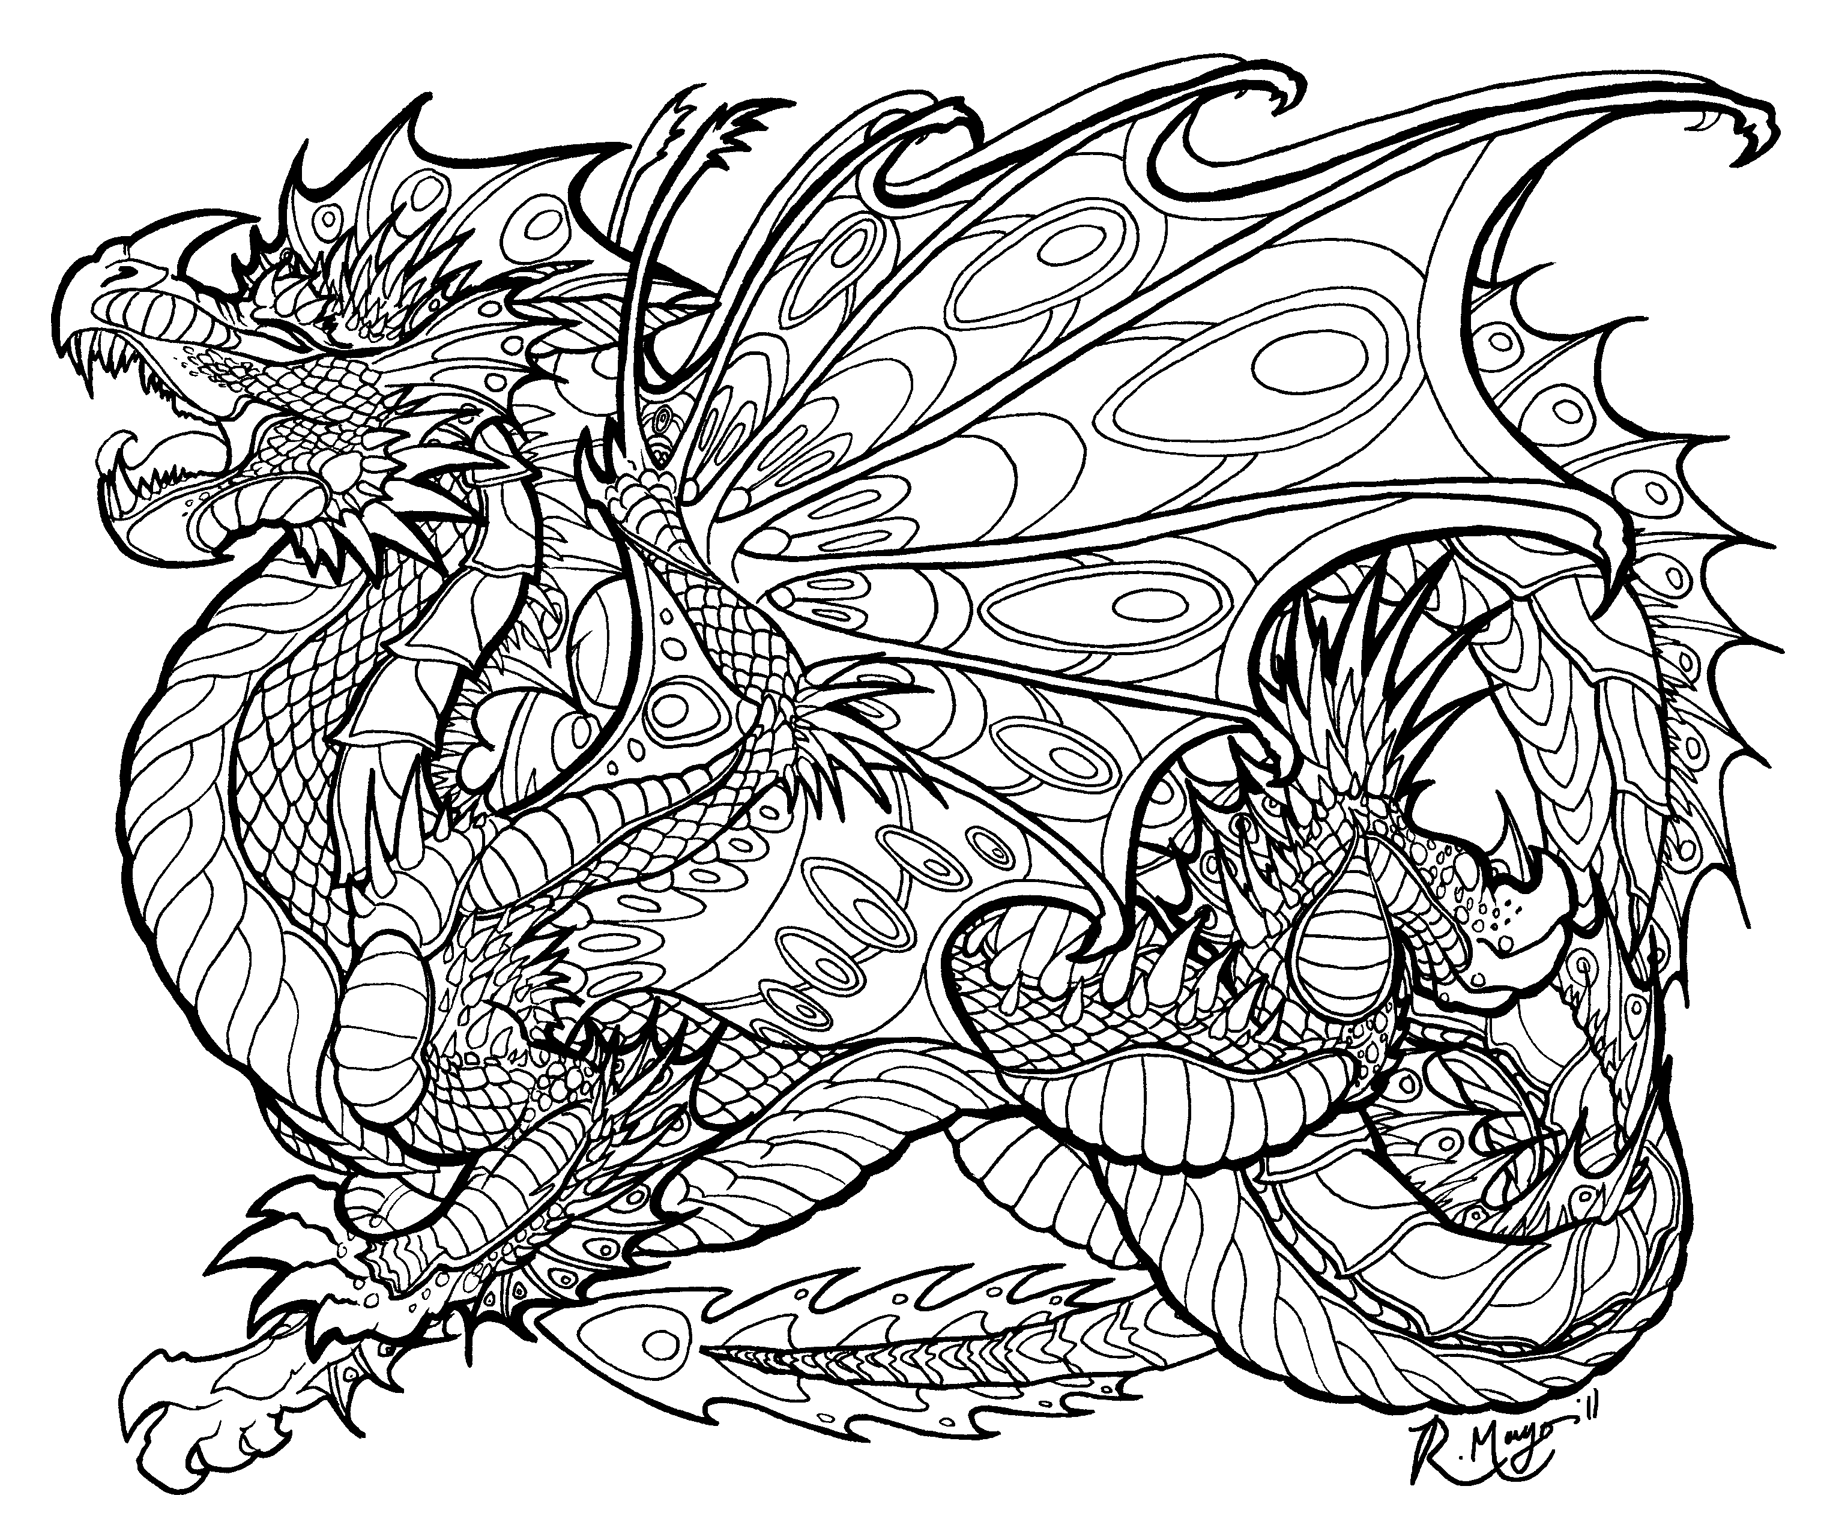 printable dragon pictures chinese dragon coloring pages to download and print for free dragon printable pictures